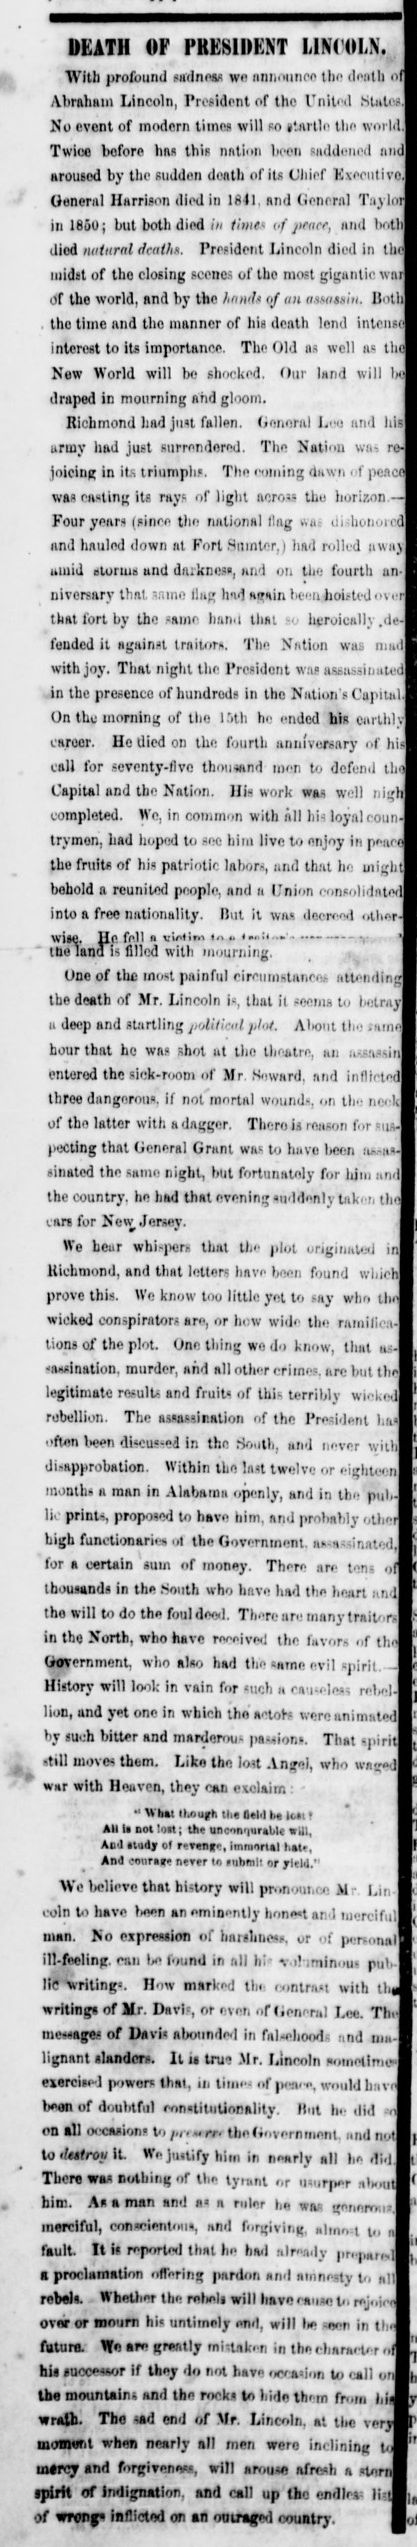 Lincoln Assassination Brownlow's Knoxville Whig and Rebel Ventilator article